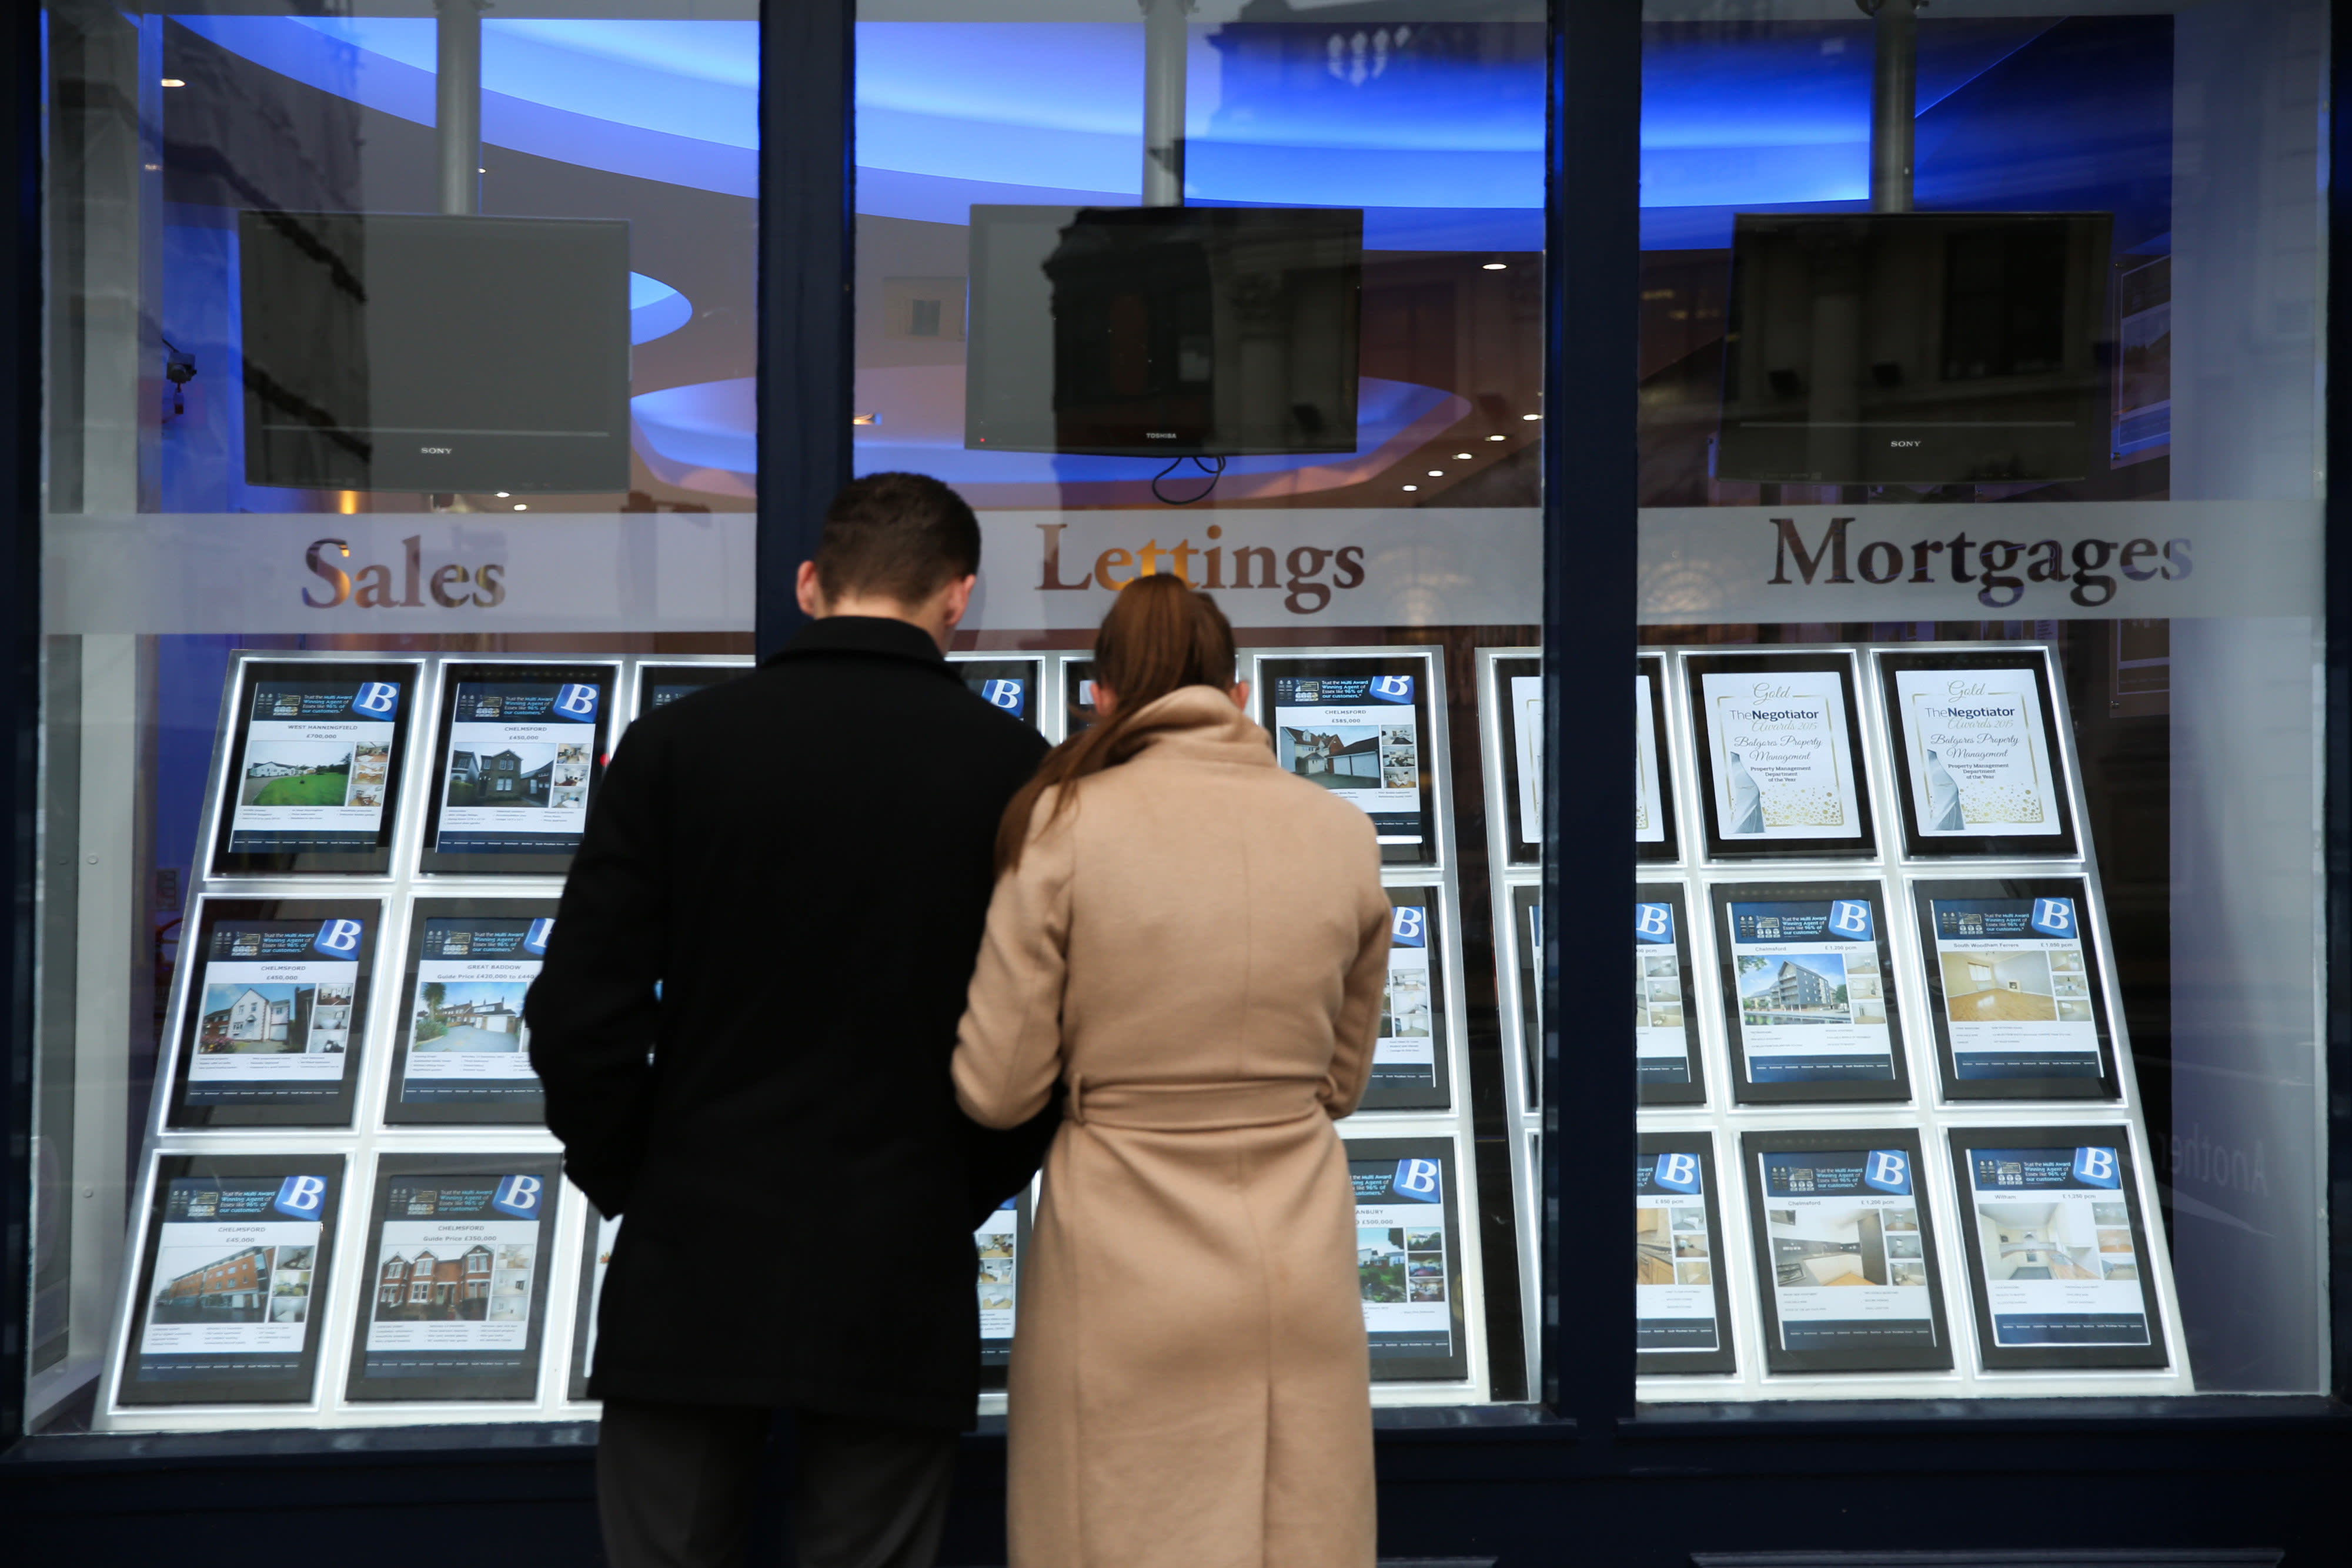 House prices grow at lowest rate in 7 years